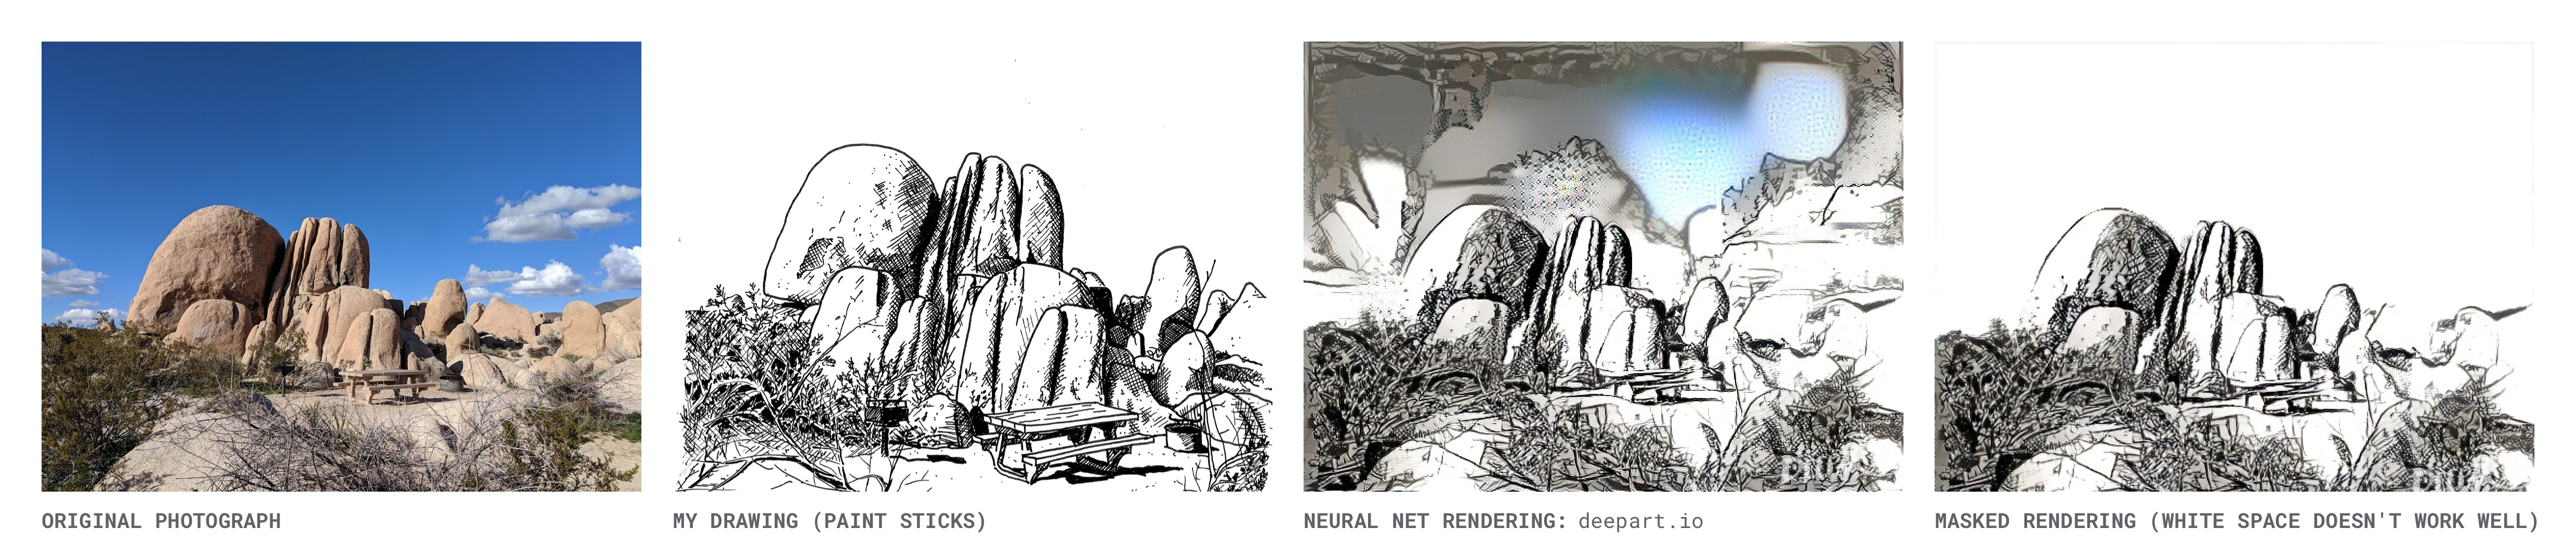 Joshua Tree: Original Photo, My Ink Drawing & Deepart Rendering